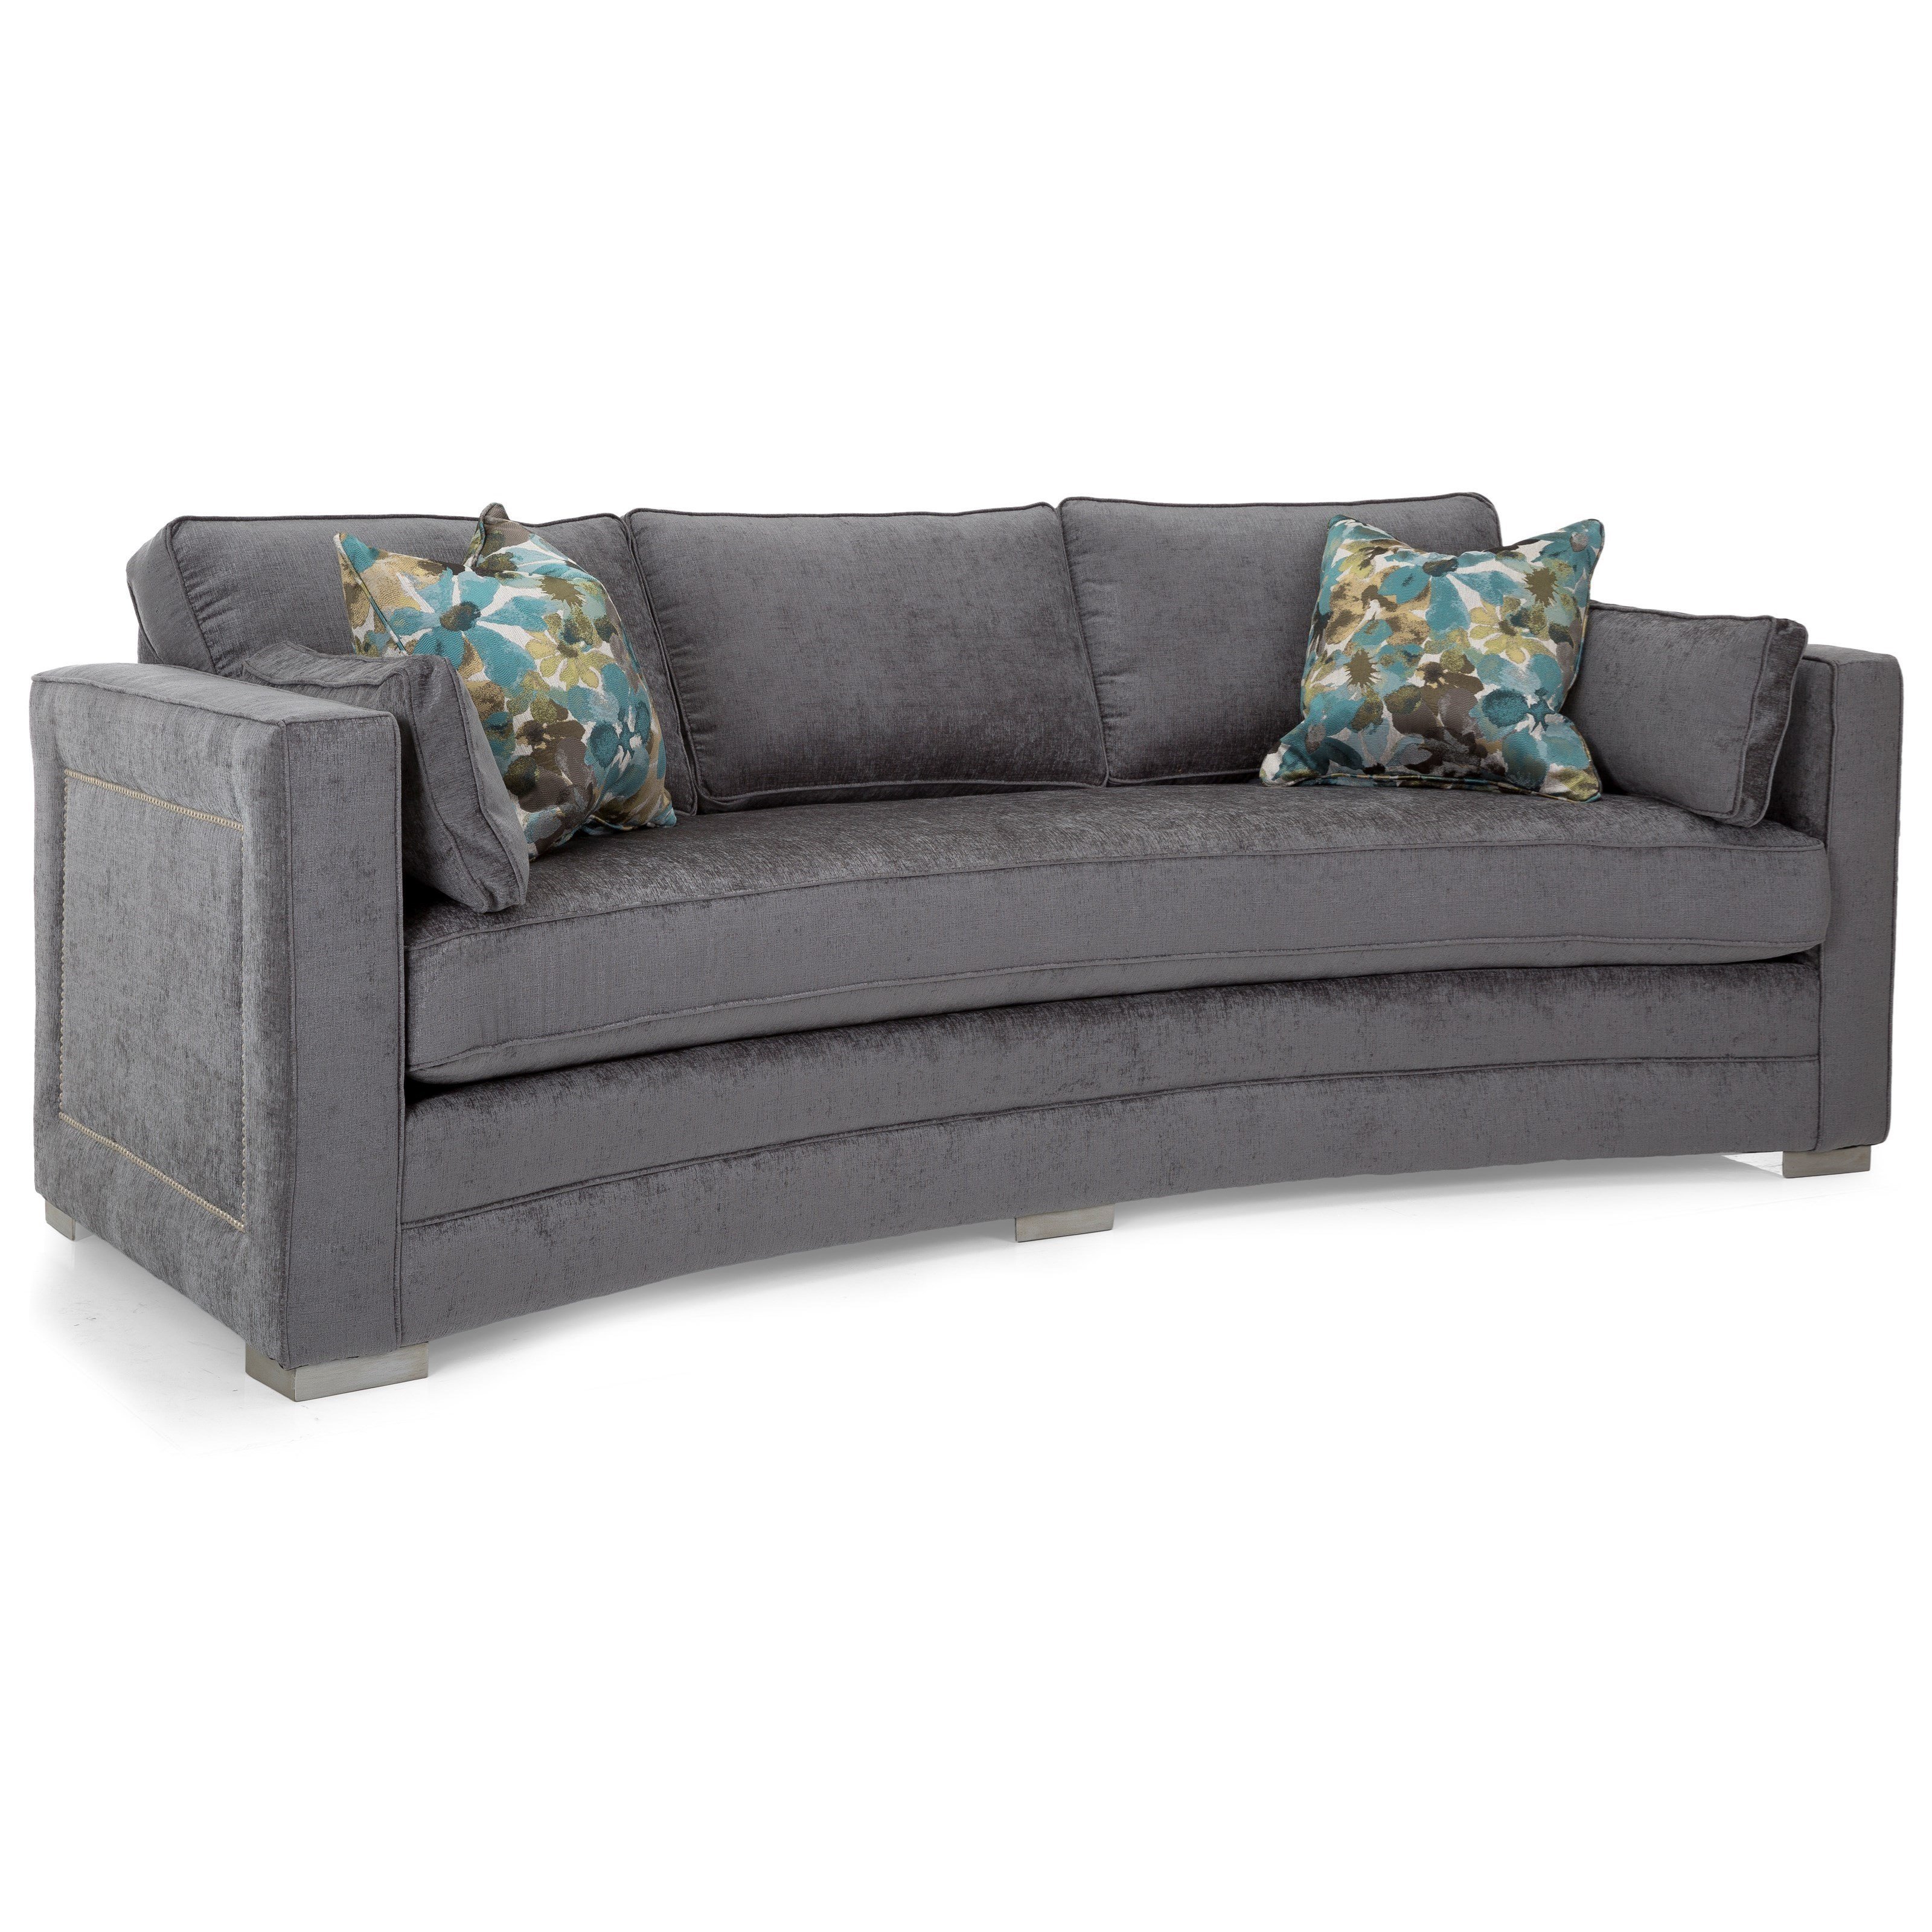 Limited Edition - 9015 Sofa by Decor-Rest at Johnny Janosik